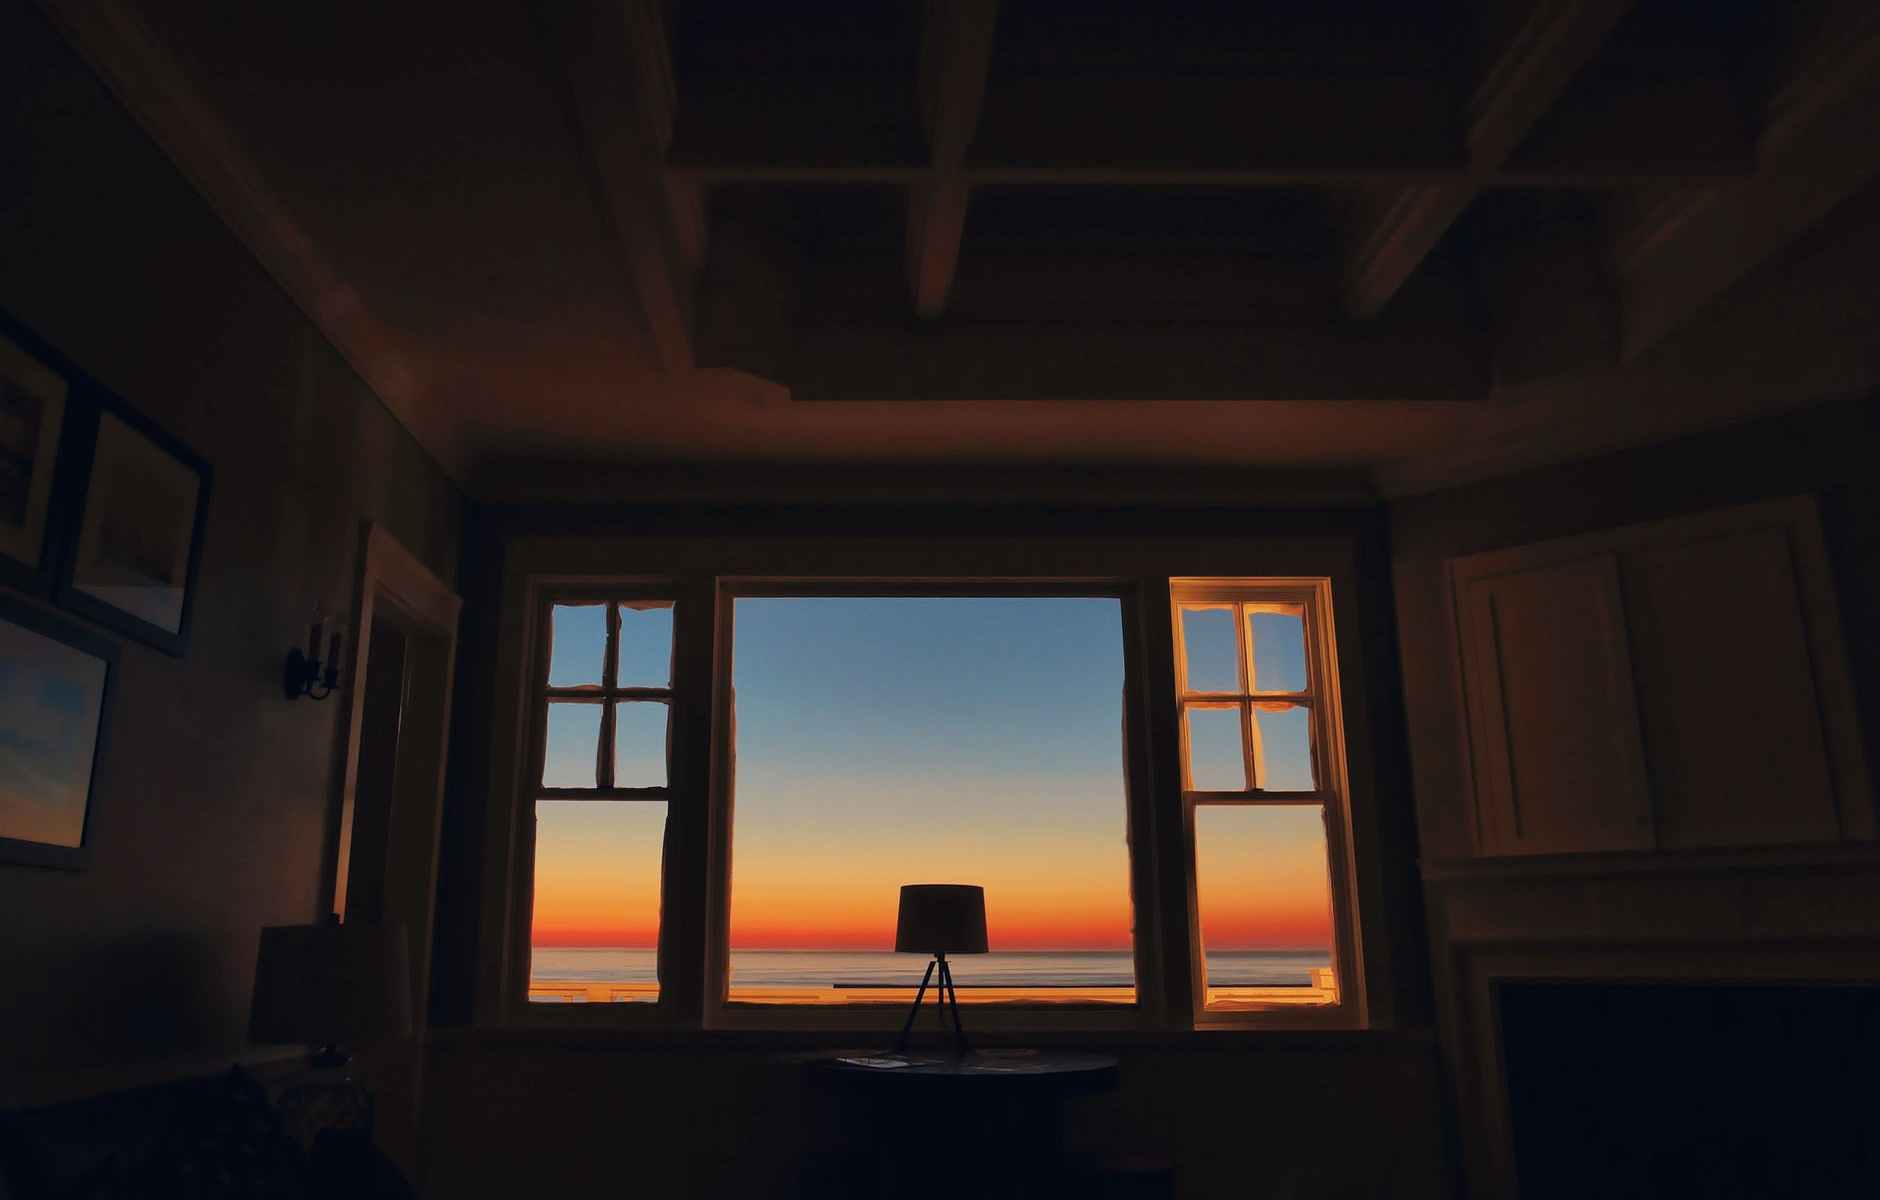 inside house looking out a window with a sunset painted on the wall